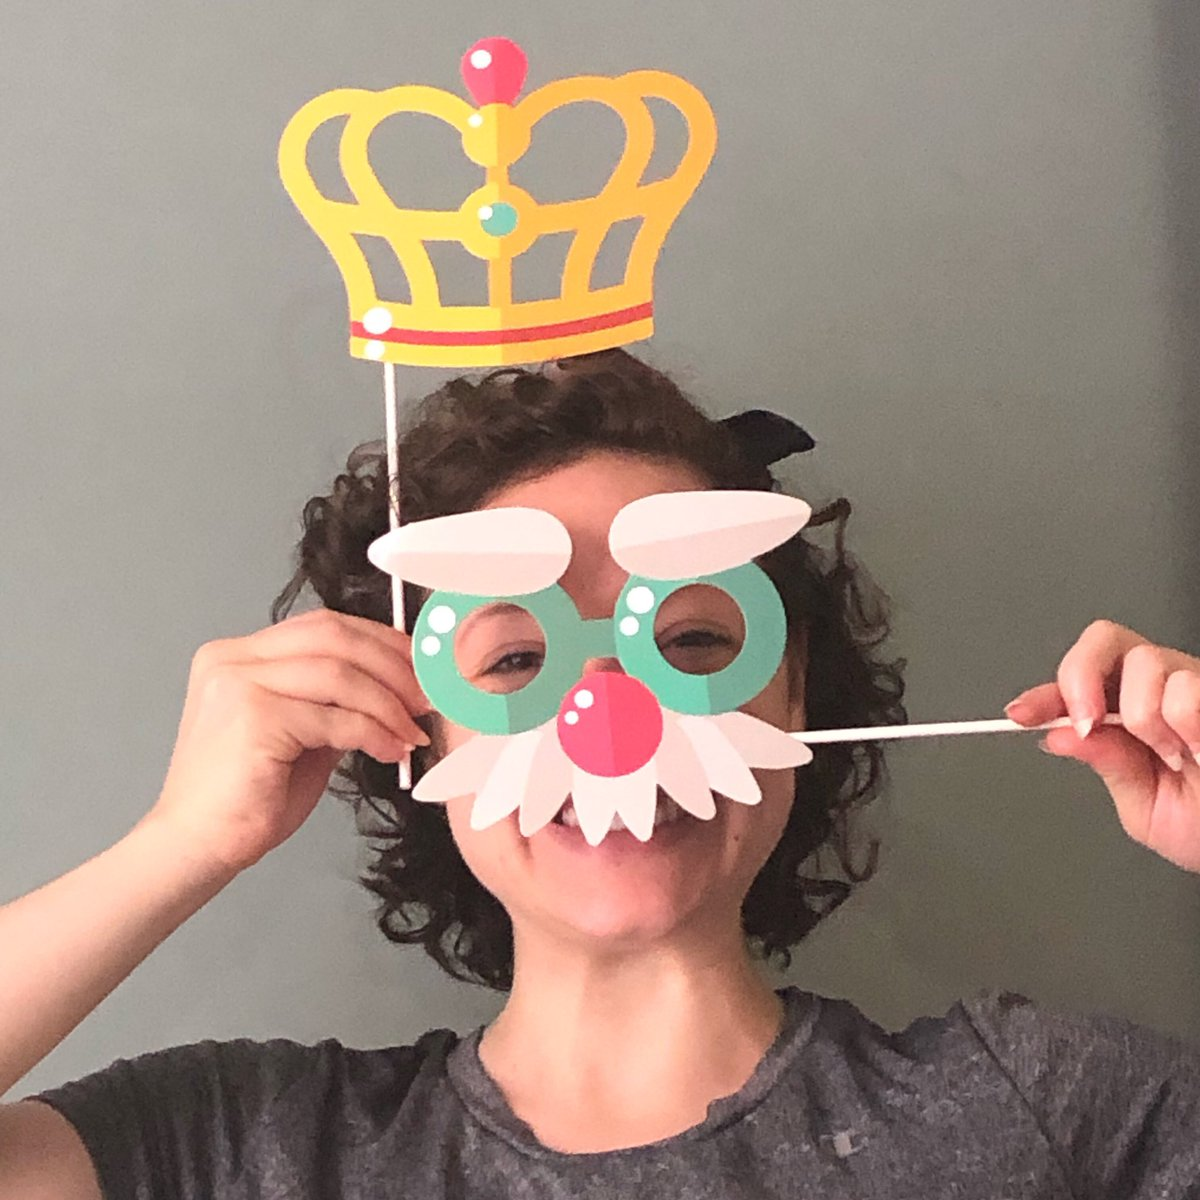 This week's Camp theme for our cutie kiddos @FlushingY is CLOWNING AROUND! we're having too much fun! 😀🤪😀 #summerfun #smile #clowningaround #summerfunday #summercamp #earlychildhoodeducation #toddlers #preK #artsed #silliness #happykids #ymca #yforall #flushingymca #queens